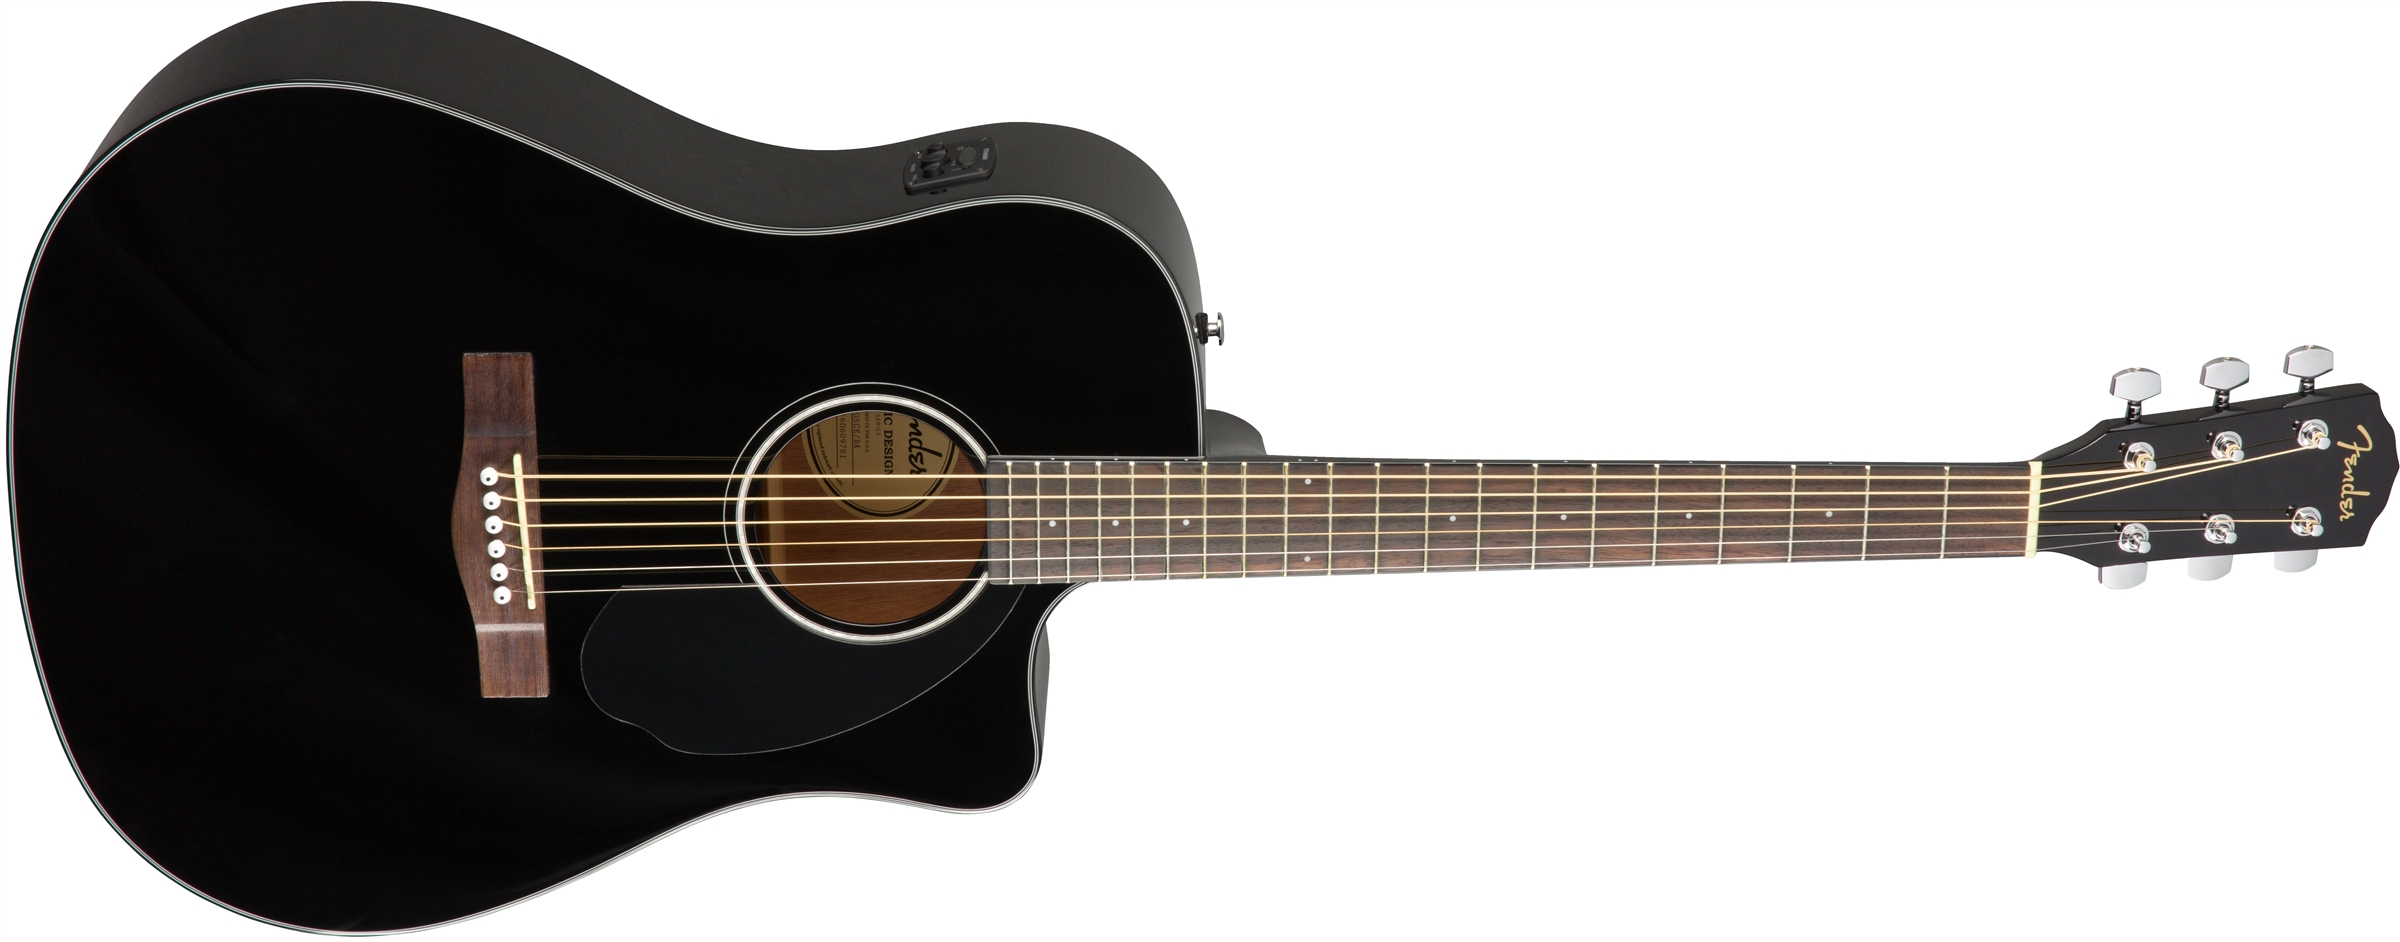 Fender CD-60SCE Dreadnought Electro Acoustic Guitar, Black